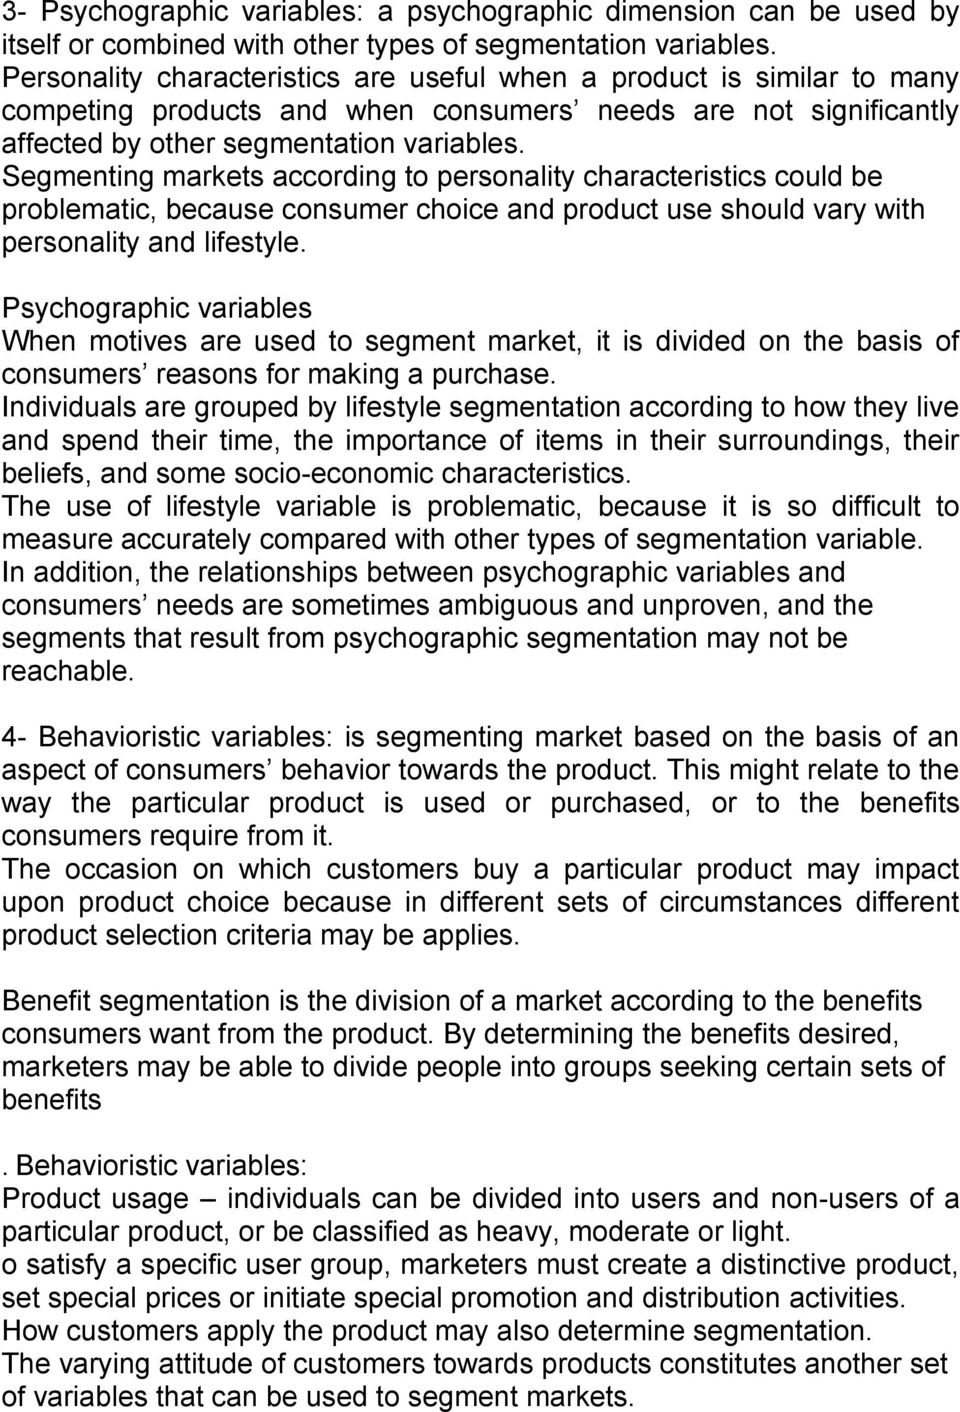 Segmenting markets according to personality characteristics could be problematic, because consumer choice and product use should vary with personality and lifestyle.